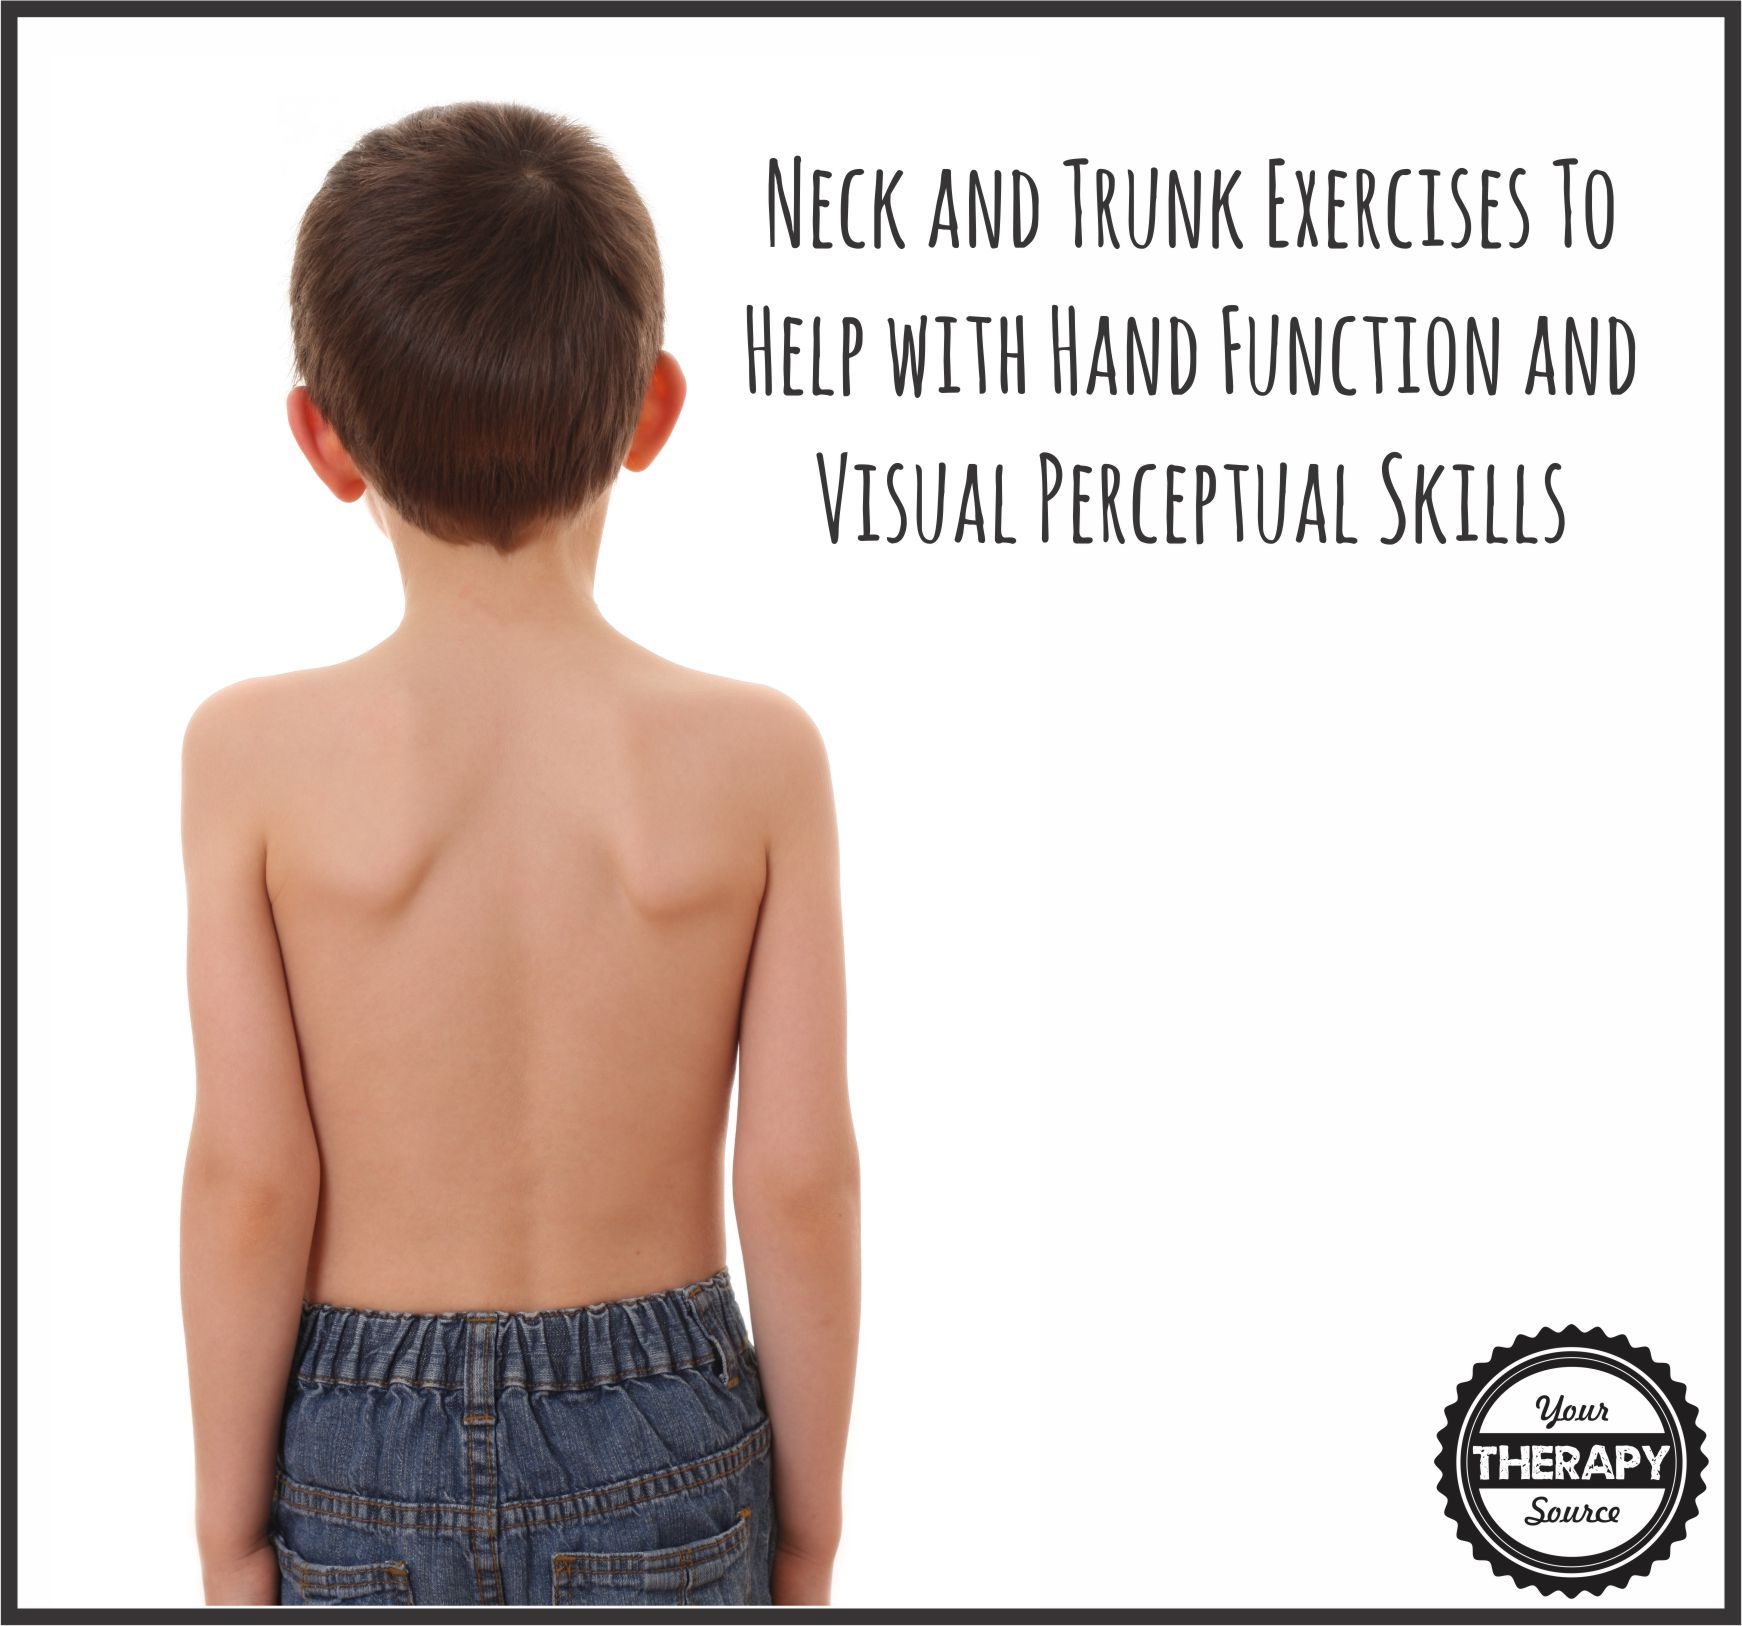 The Neck And Trunk Exercises Used In This Study Helped Improve Hand Function And Visual